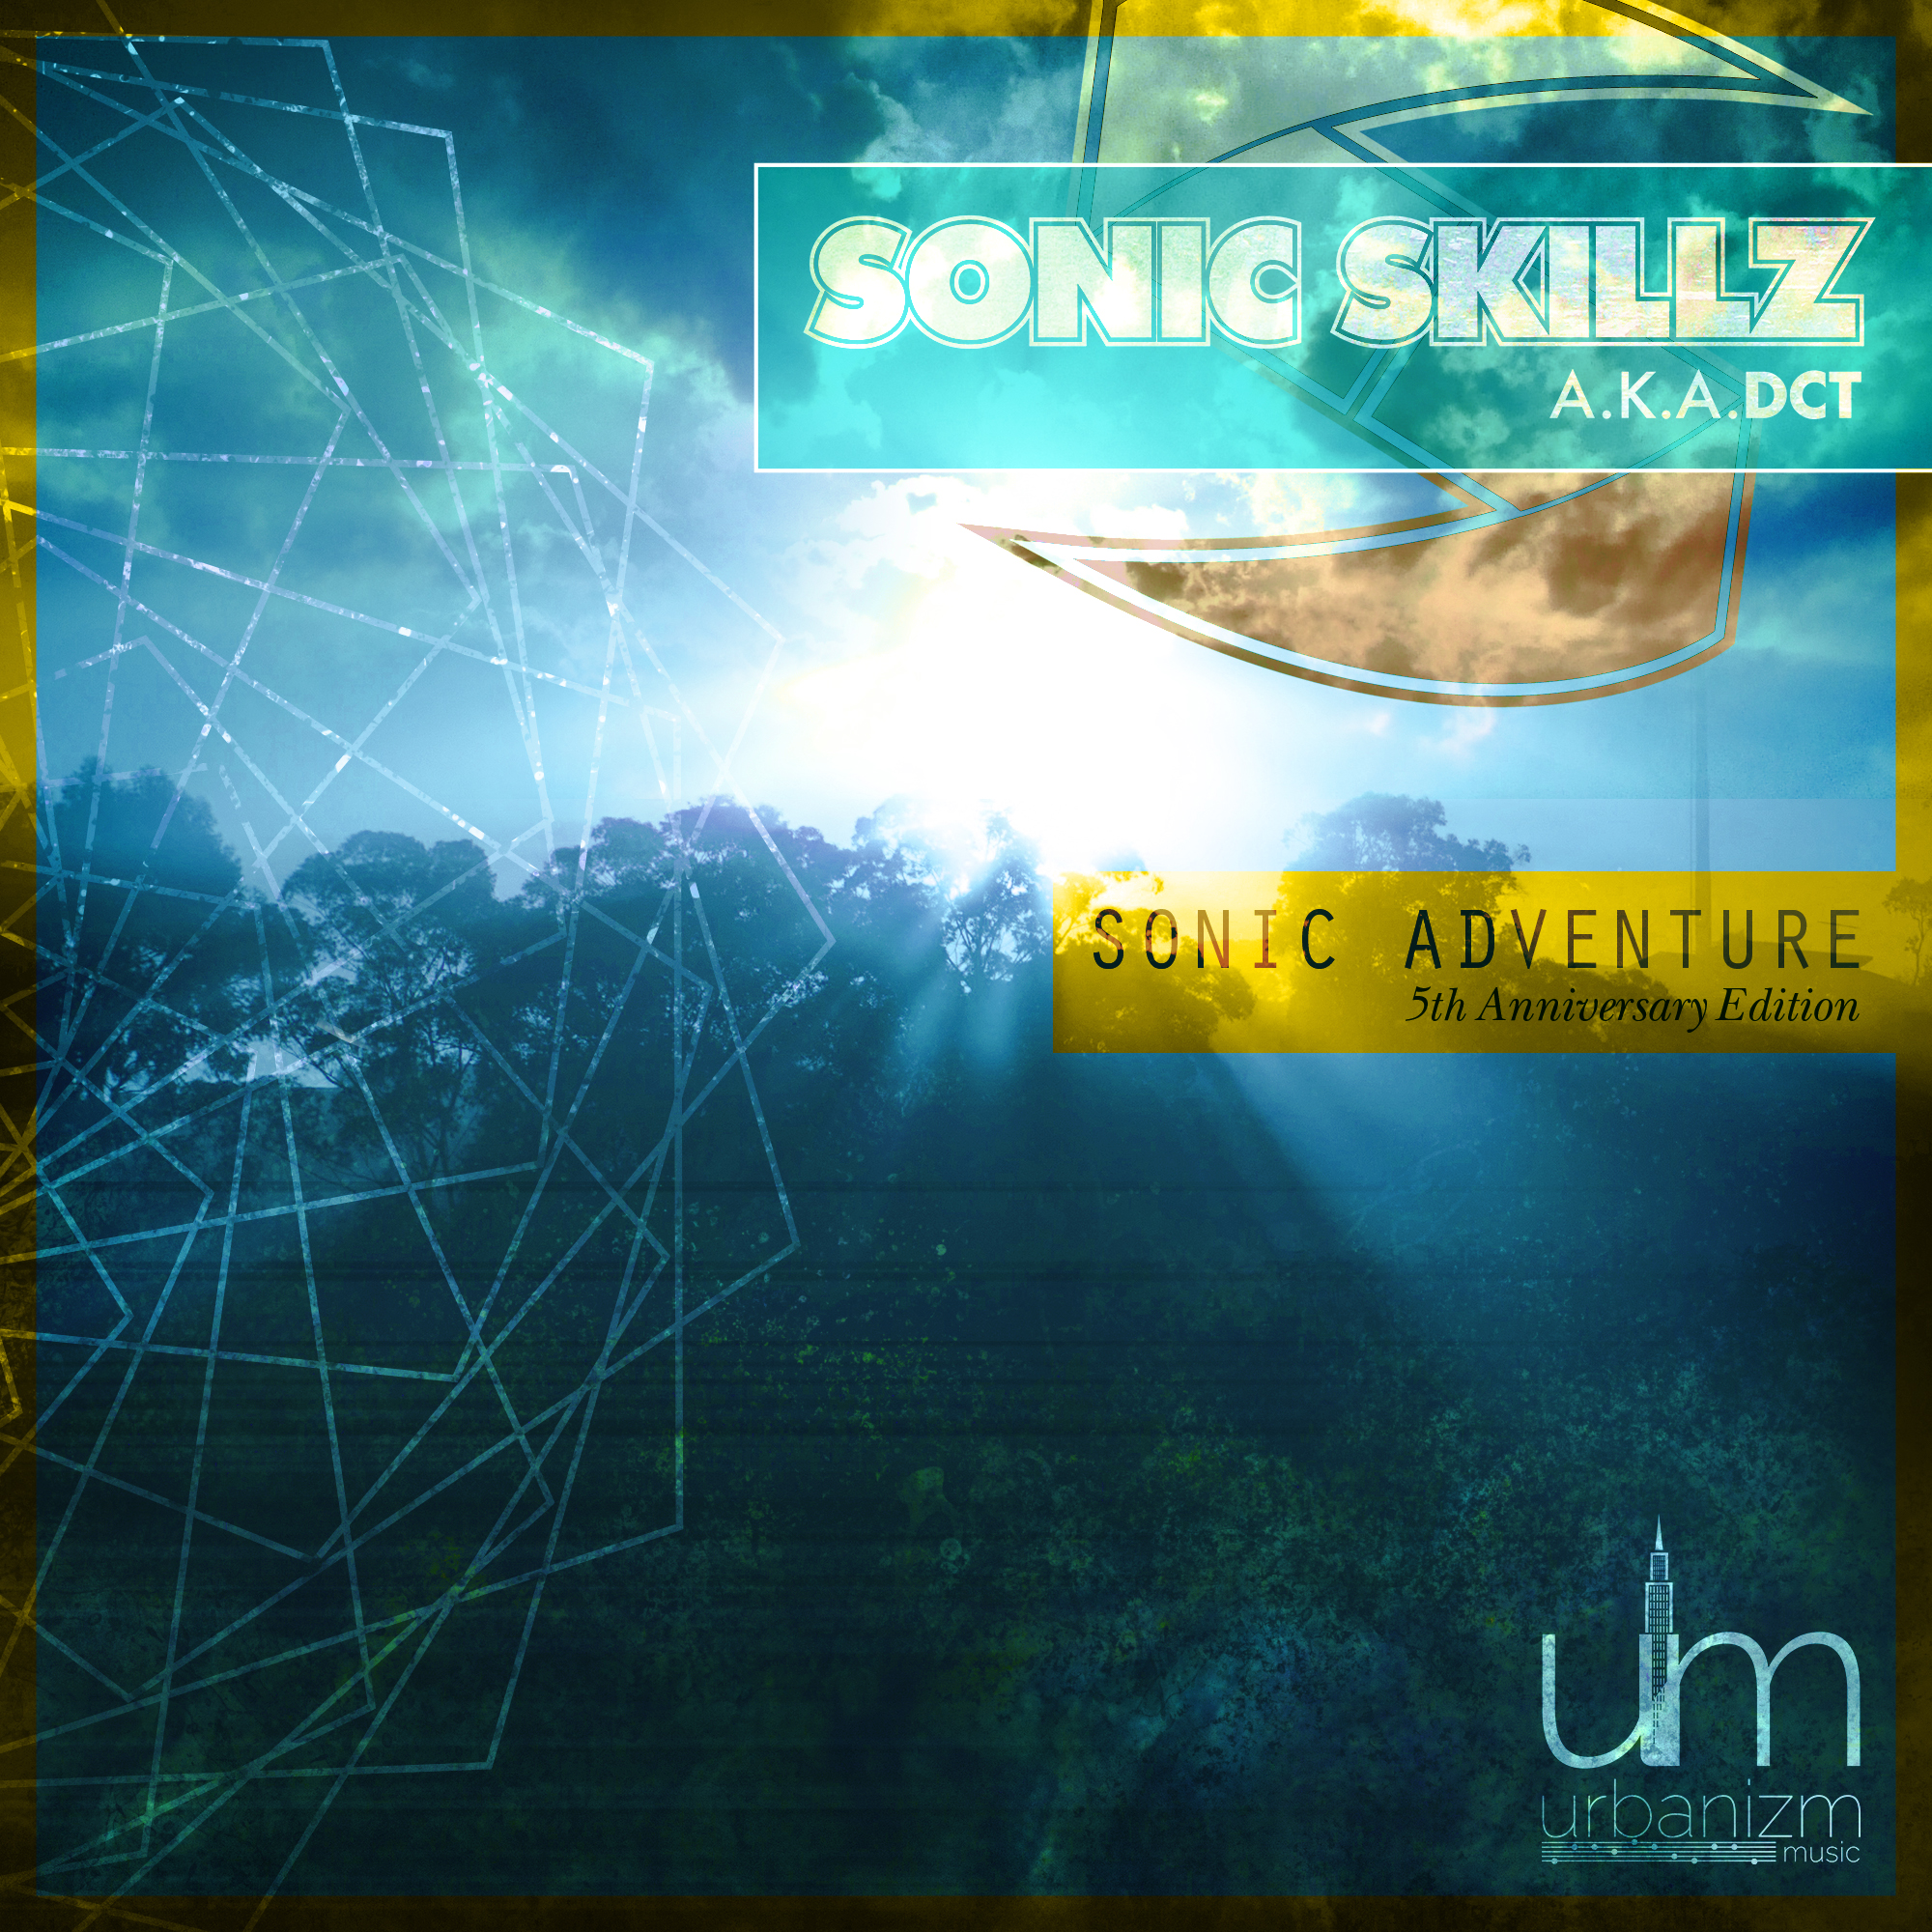 Sonic Skillz - Sonic Adventure (5th Anniversary Edition)